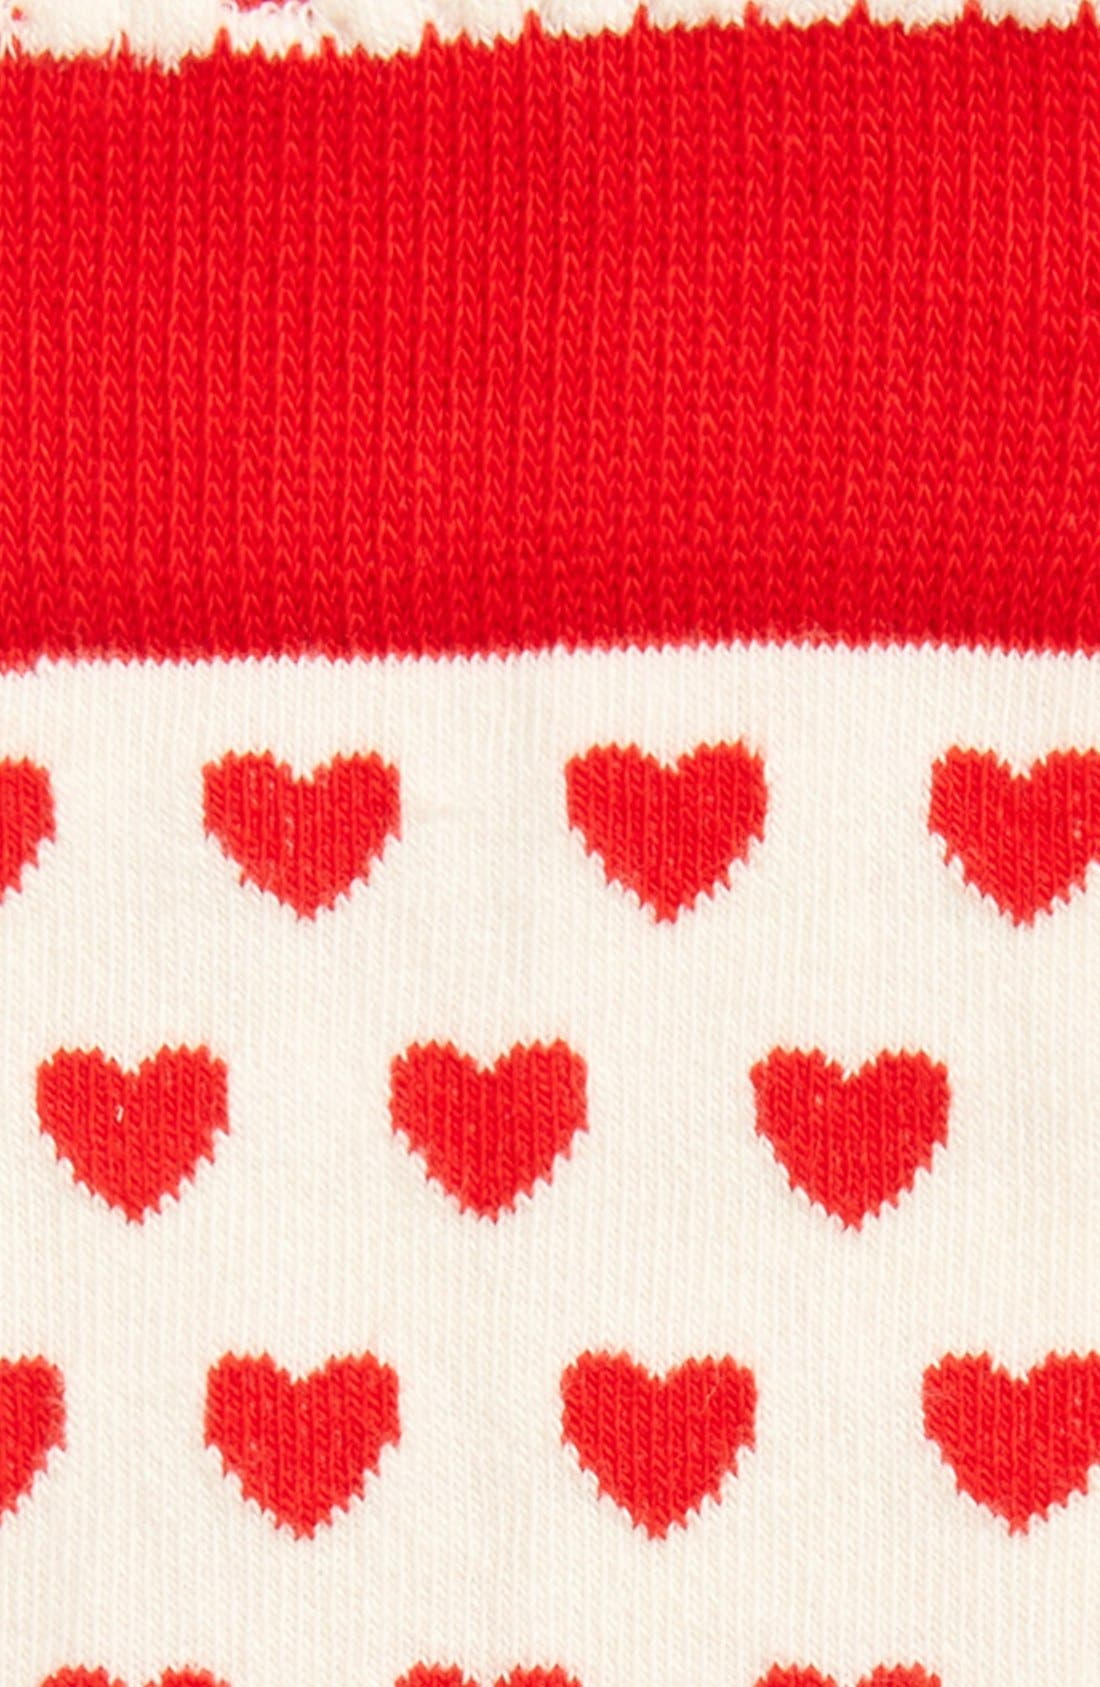 'Rudolph the Red Nosed Reindeer & Hearts' Knee High Socks,                             Alternate thumbnail 2, color,                             100